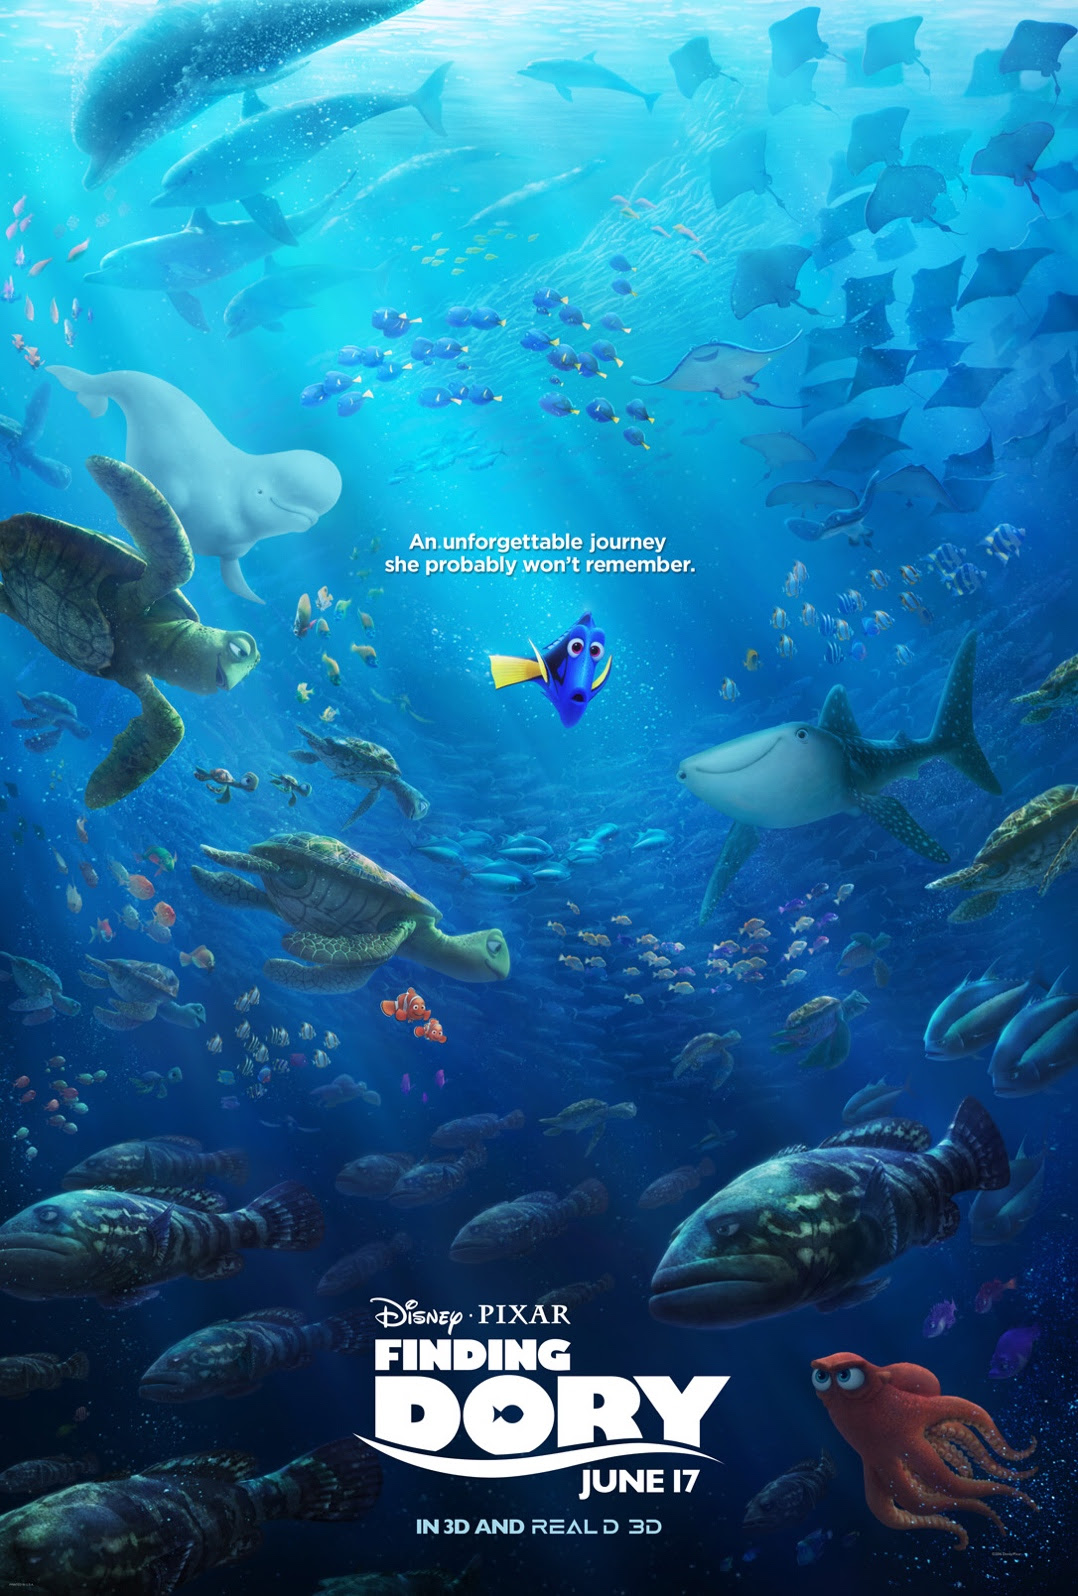 http://attractionsmagazine.com/wp-content/uploads/2016/03/Finding-Dory-movie-poster.jpg